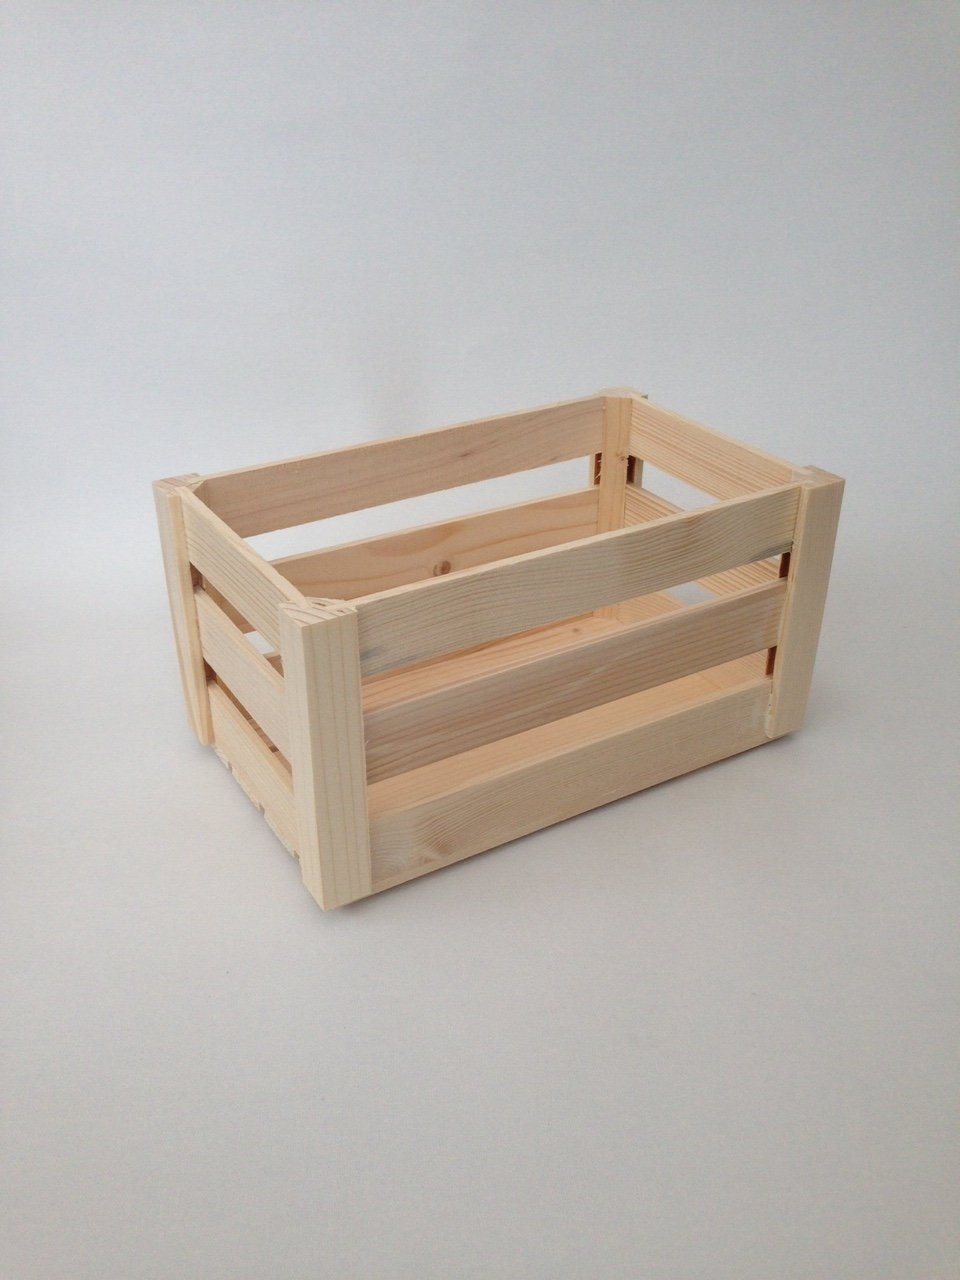 Awesome Plain Unpainted Wooden Set Crate Storage Box Small Craft Box (M   28 X 17 X  12 Cmm): Amazon.co.uk: Kitchen U0026 Home